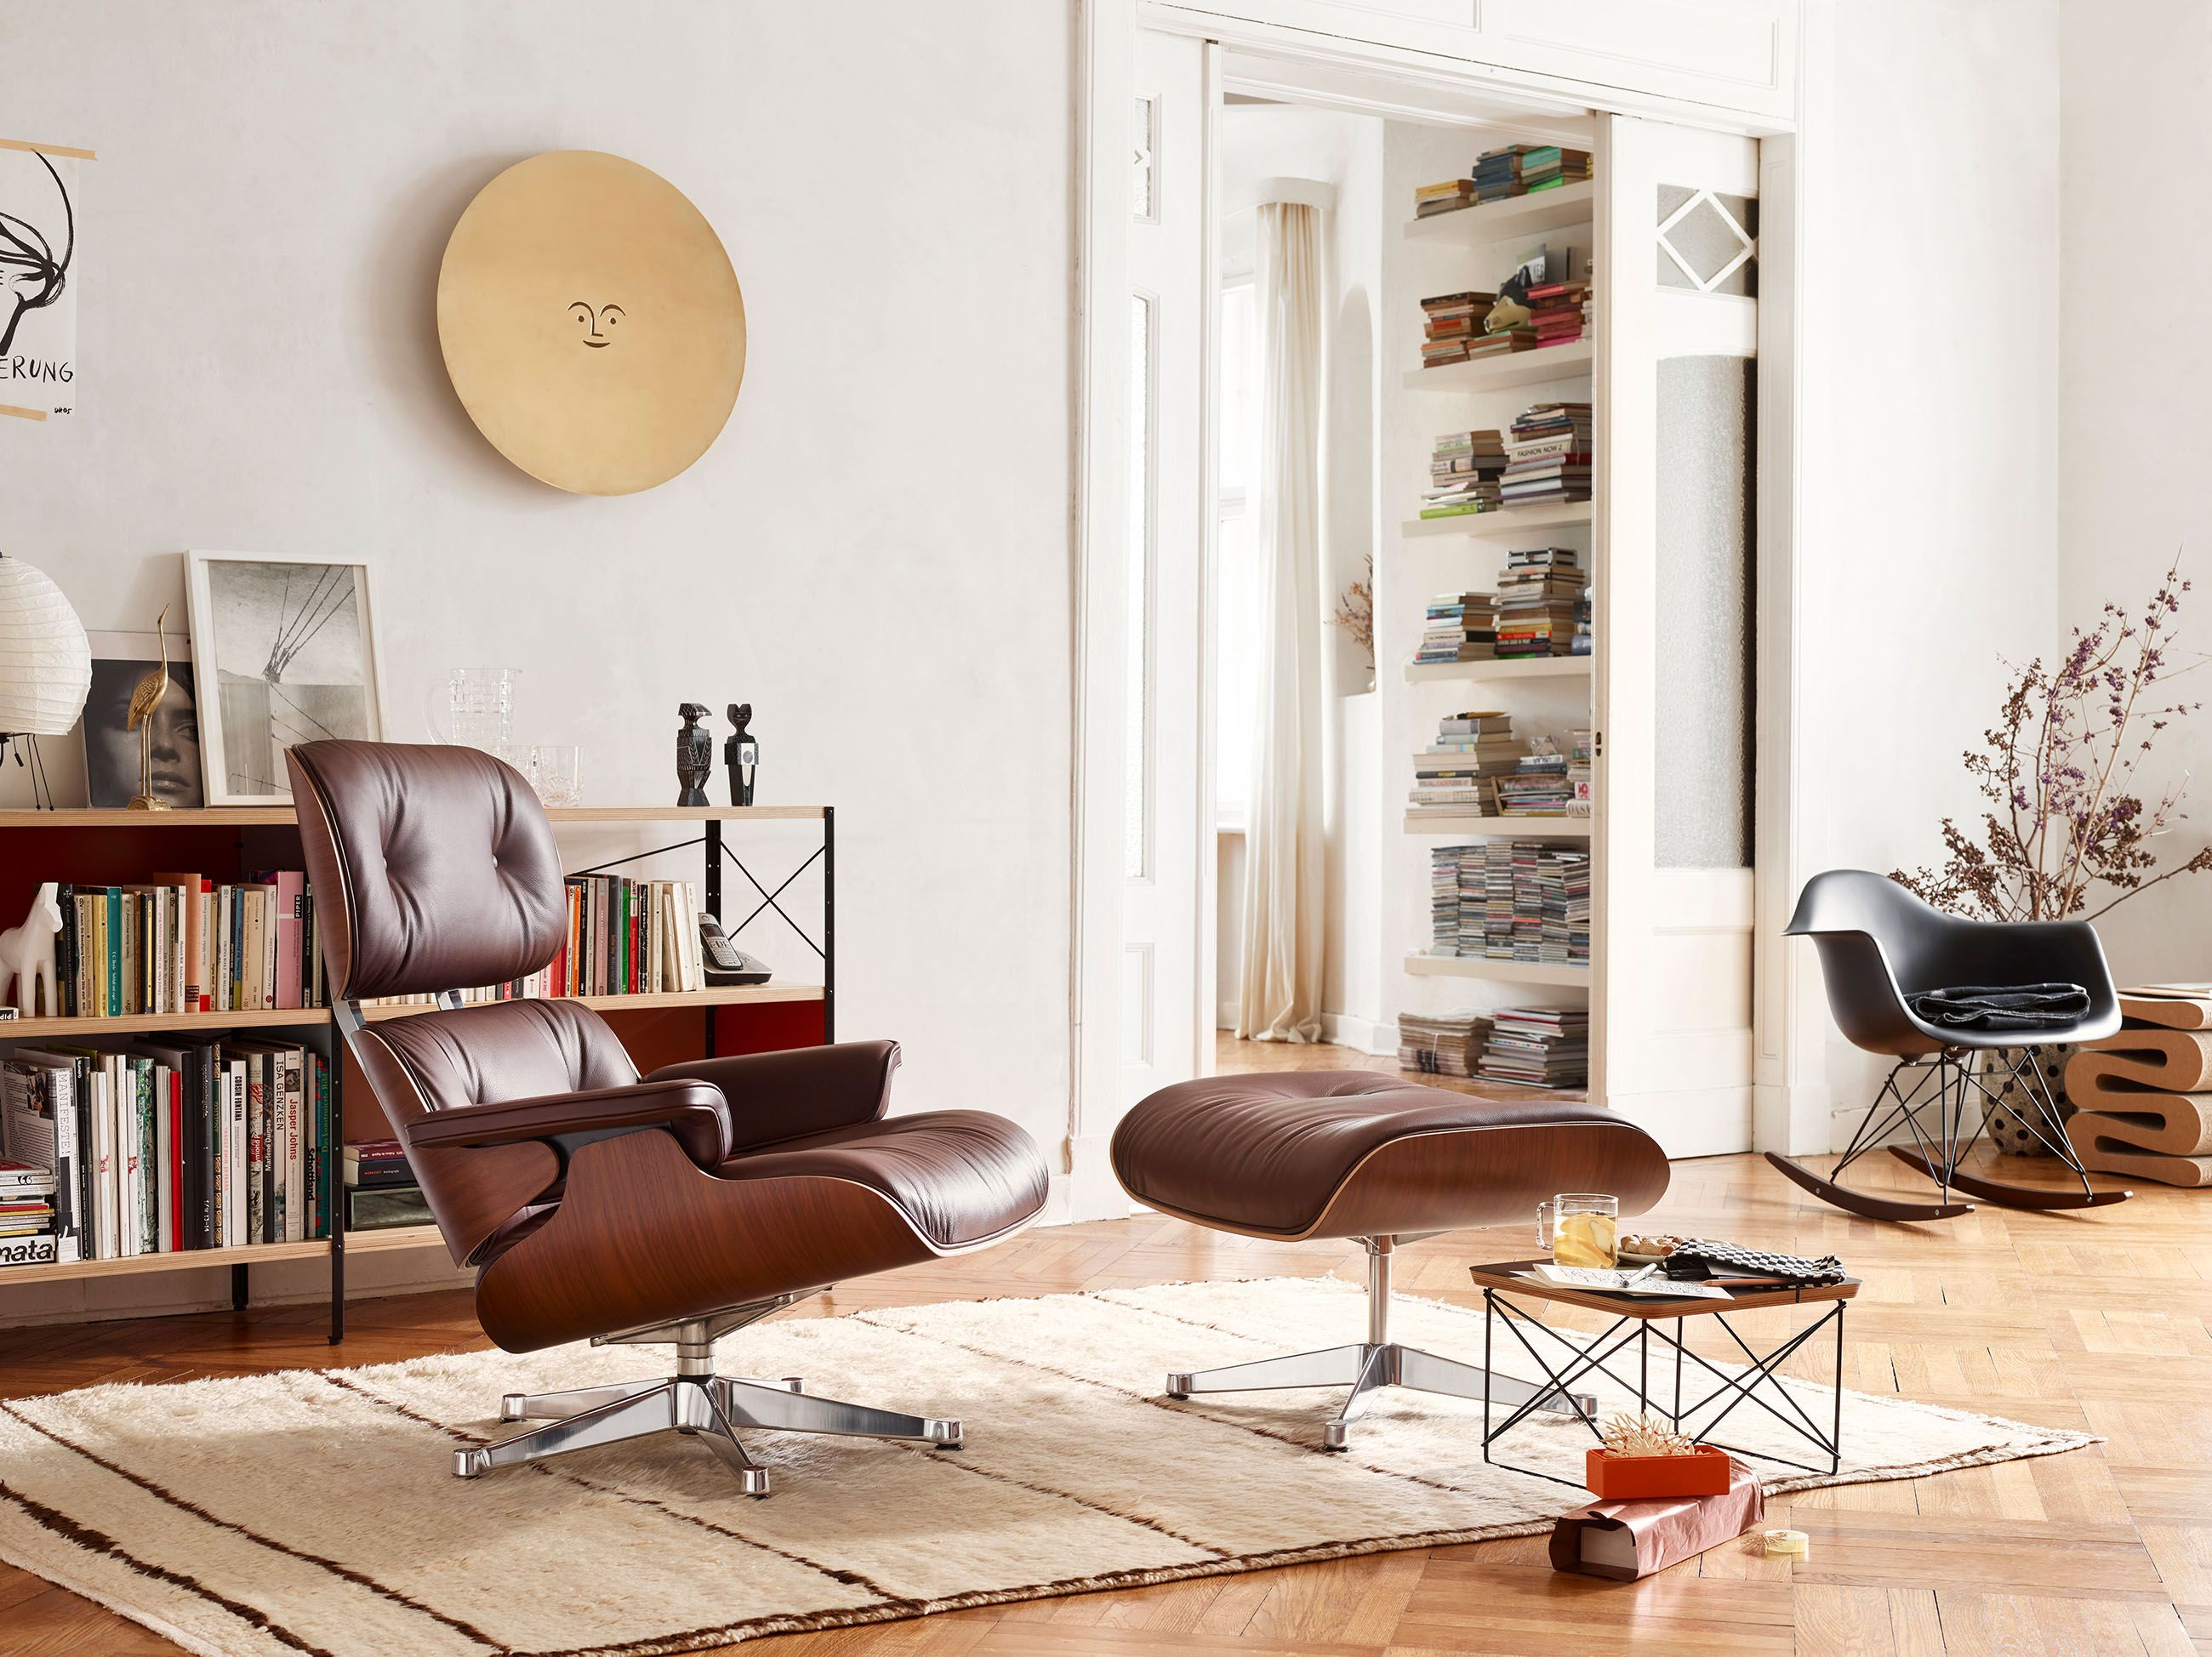 Lounge Chair & Ottomann von Vitra